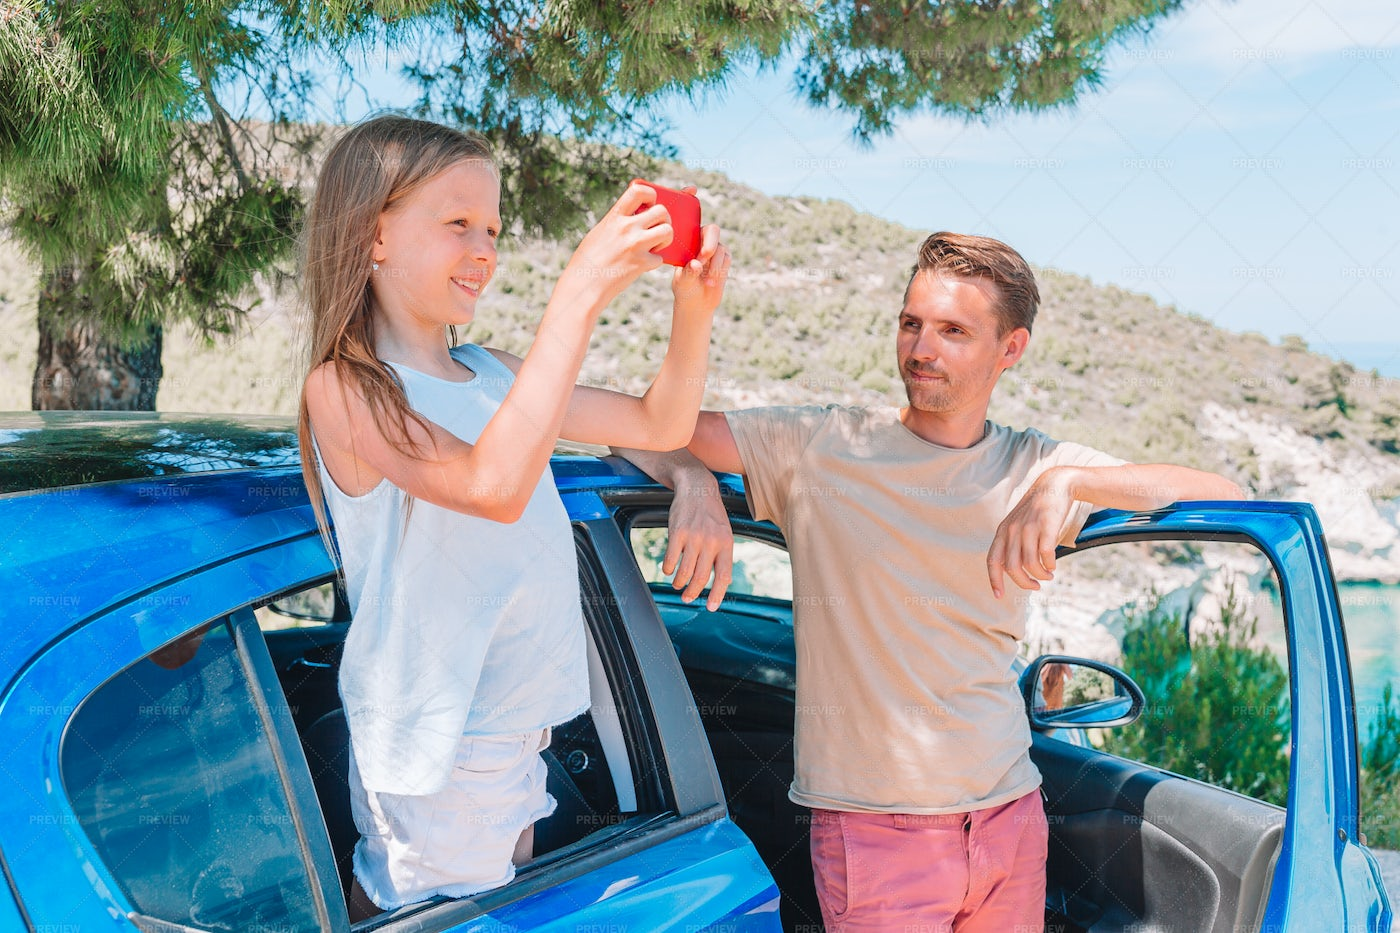 Photographing The Road Trip: Stock Photos